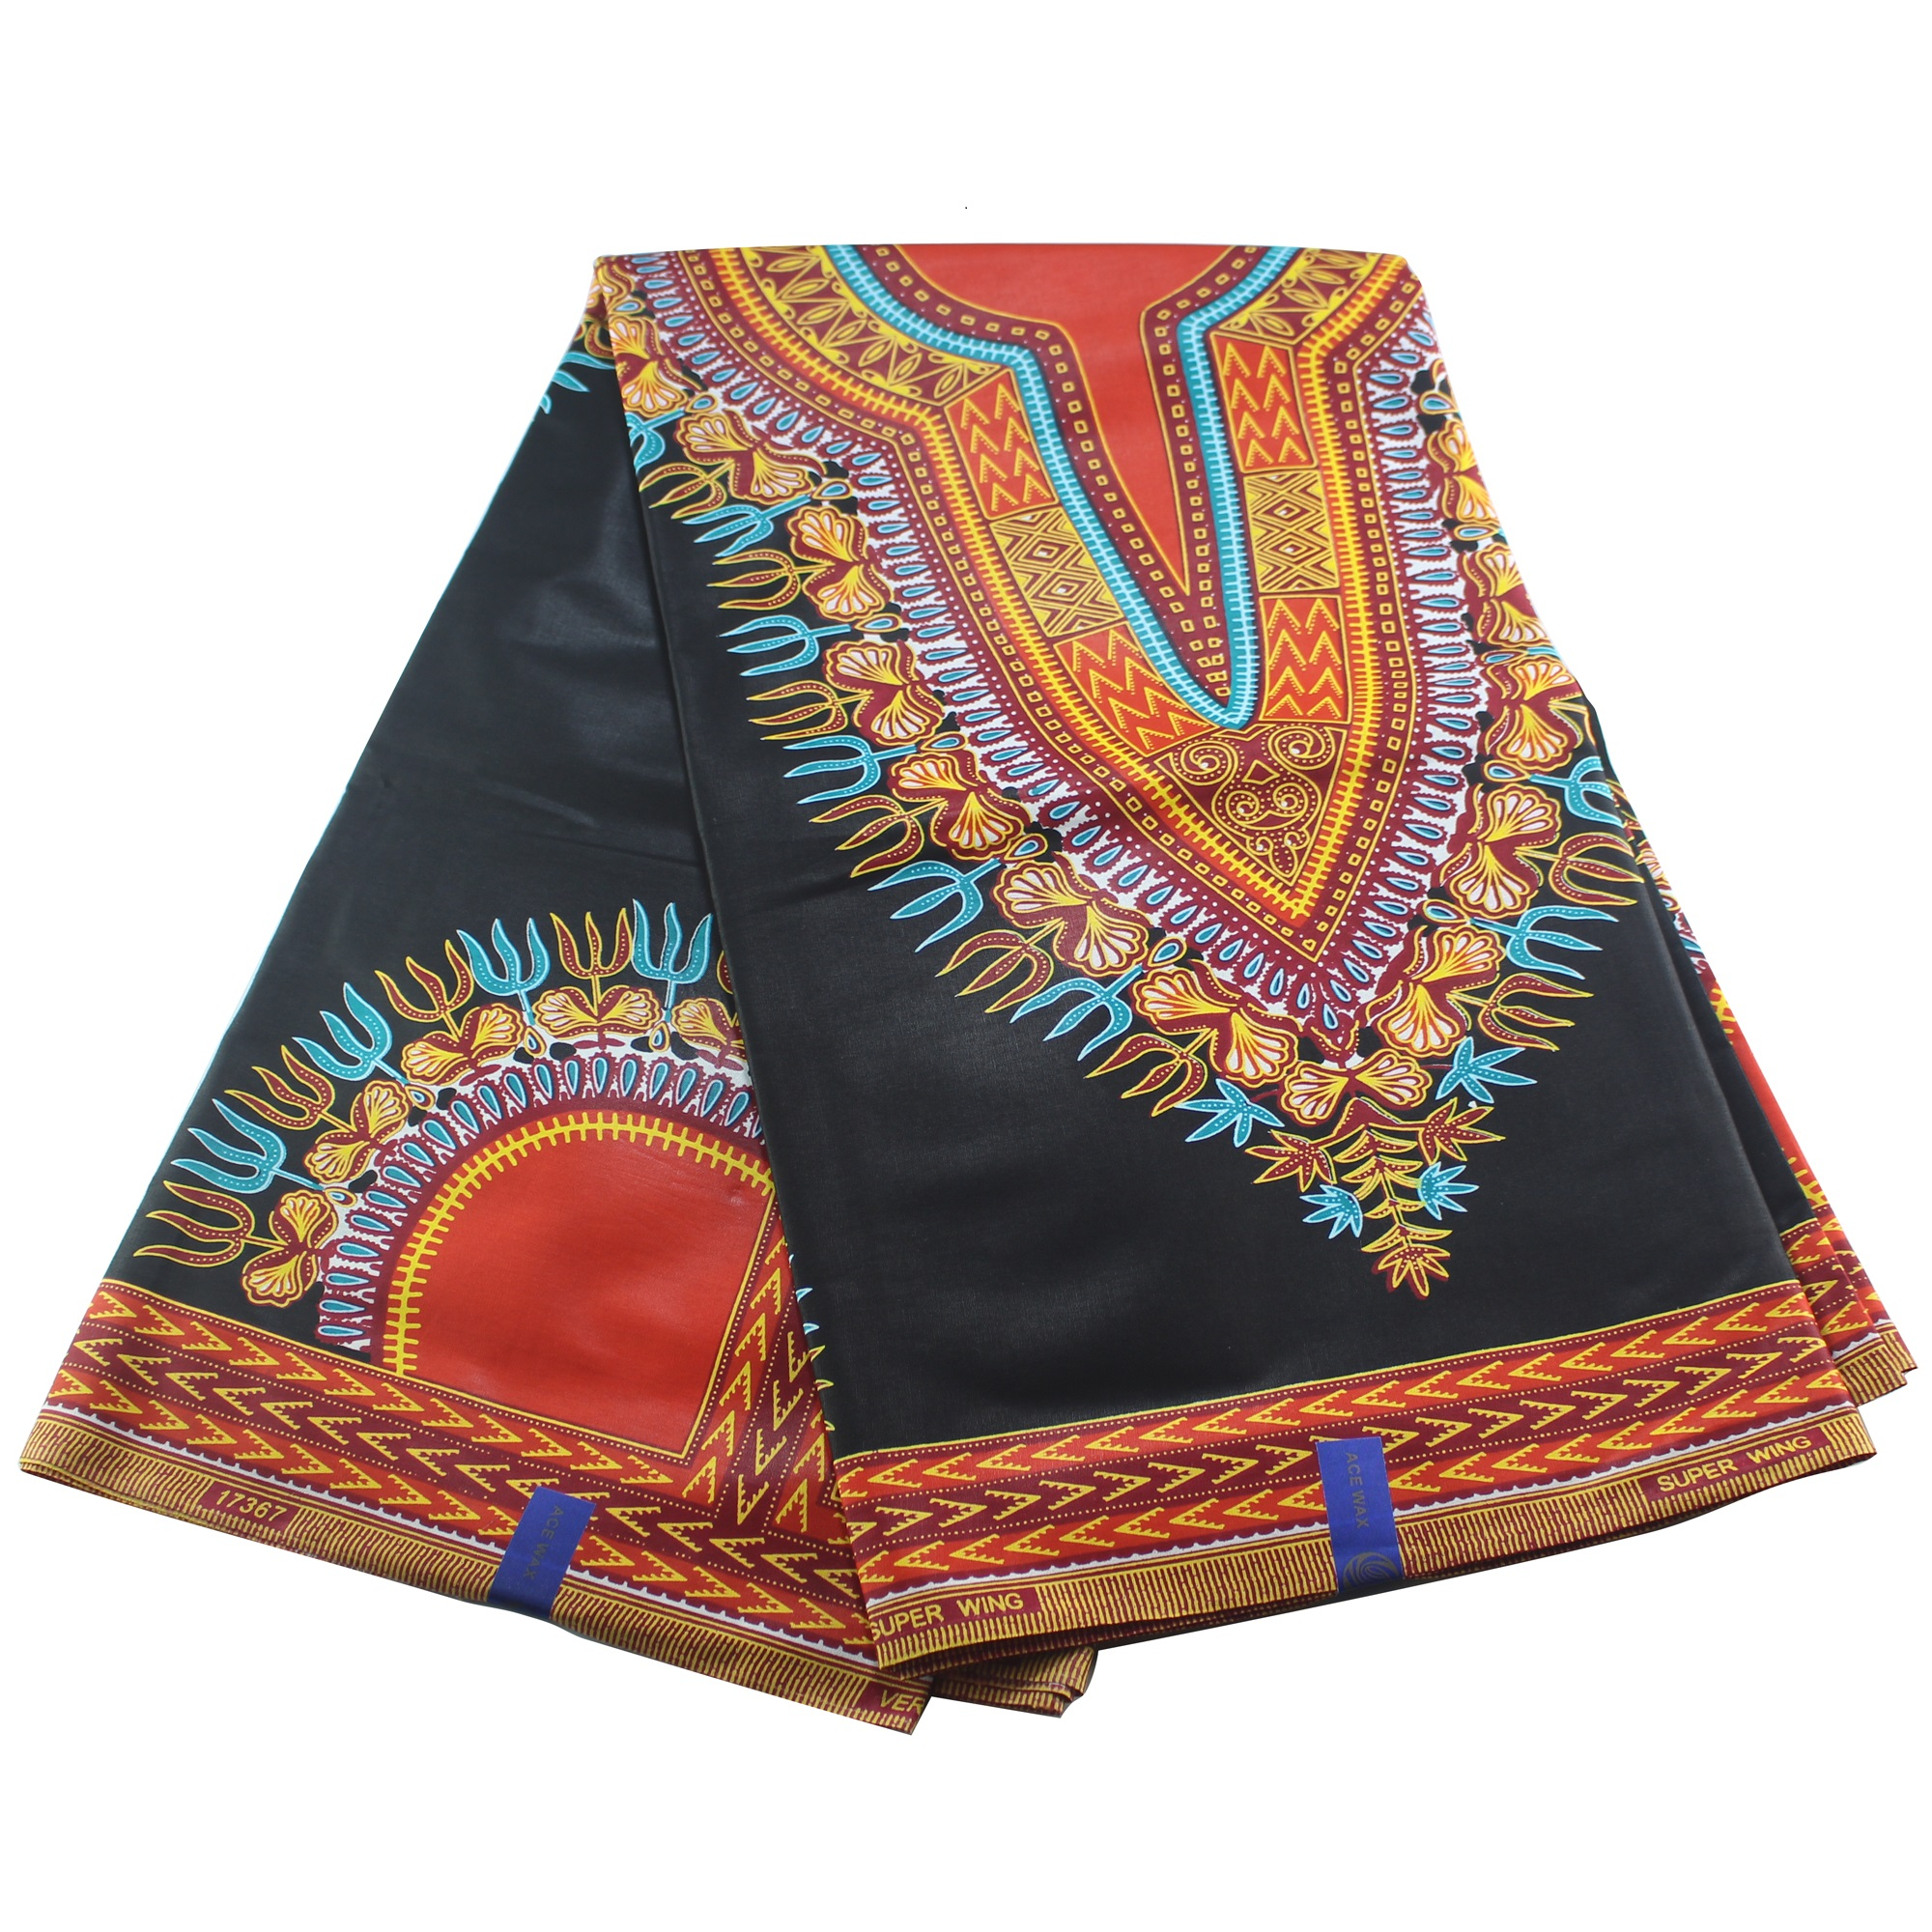 New Dashiki Thick Black Red African Dutch Wax Colorful Ankara Material 100% Cotton